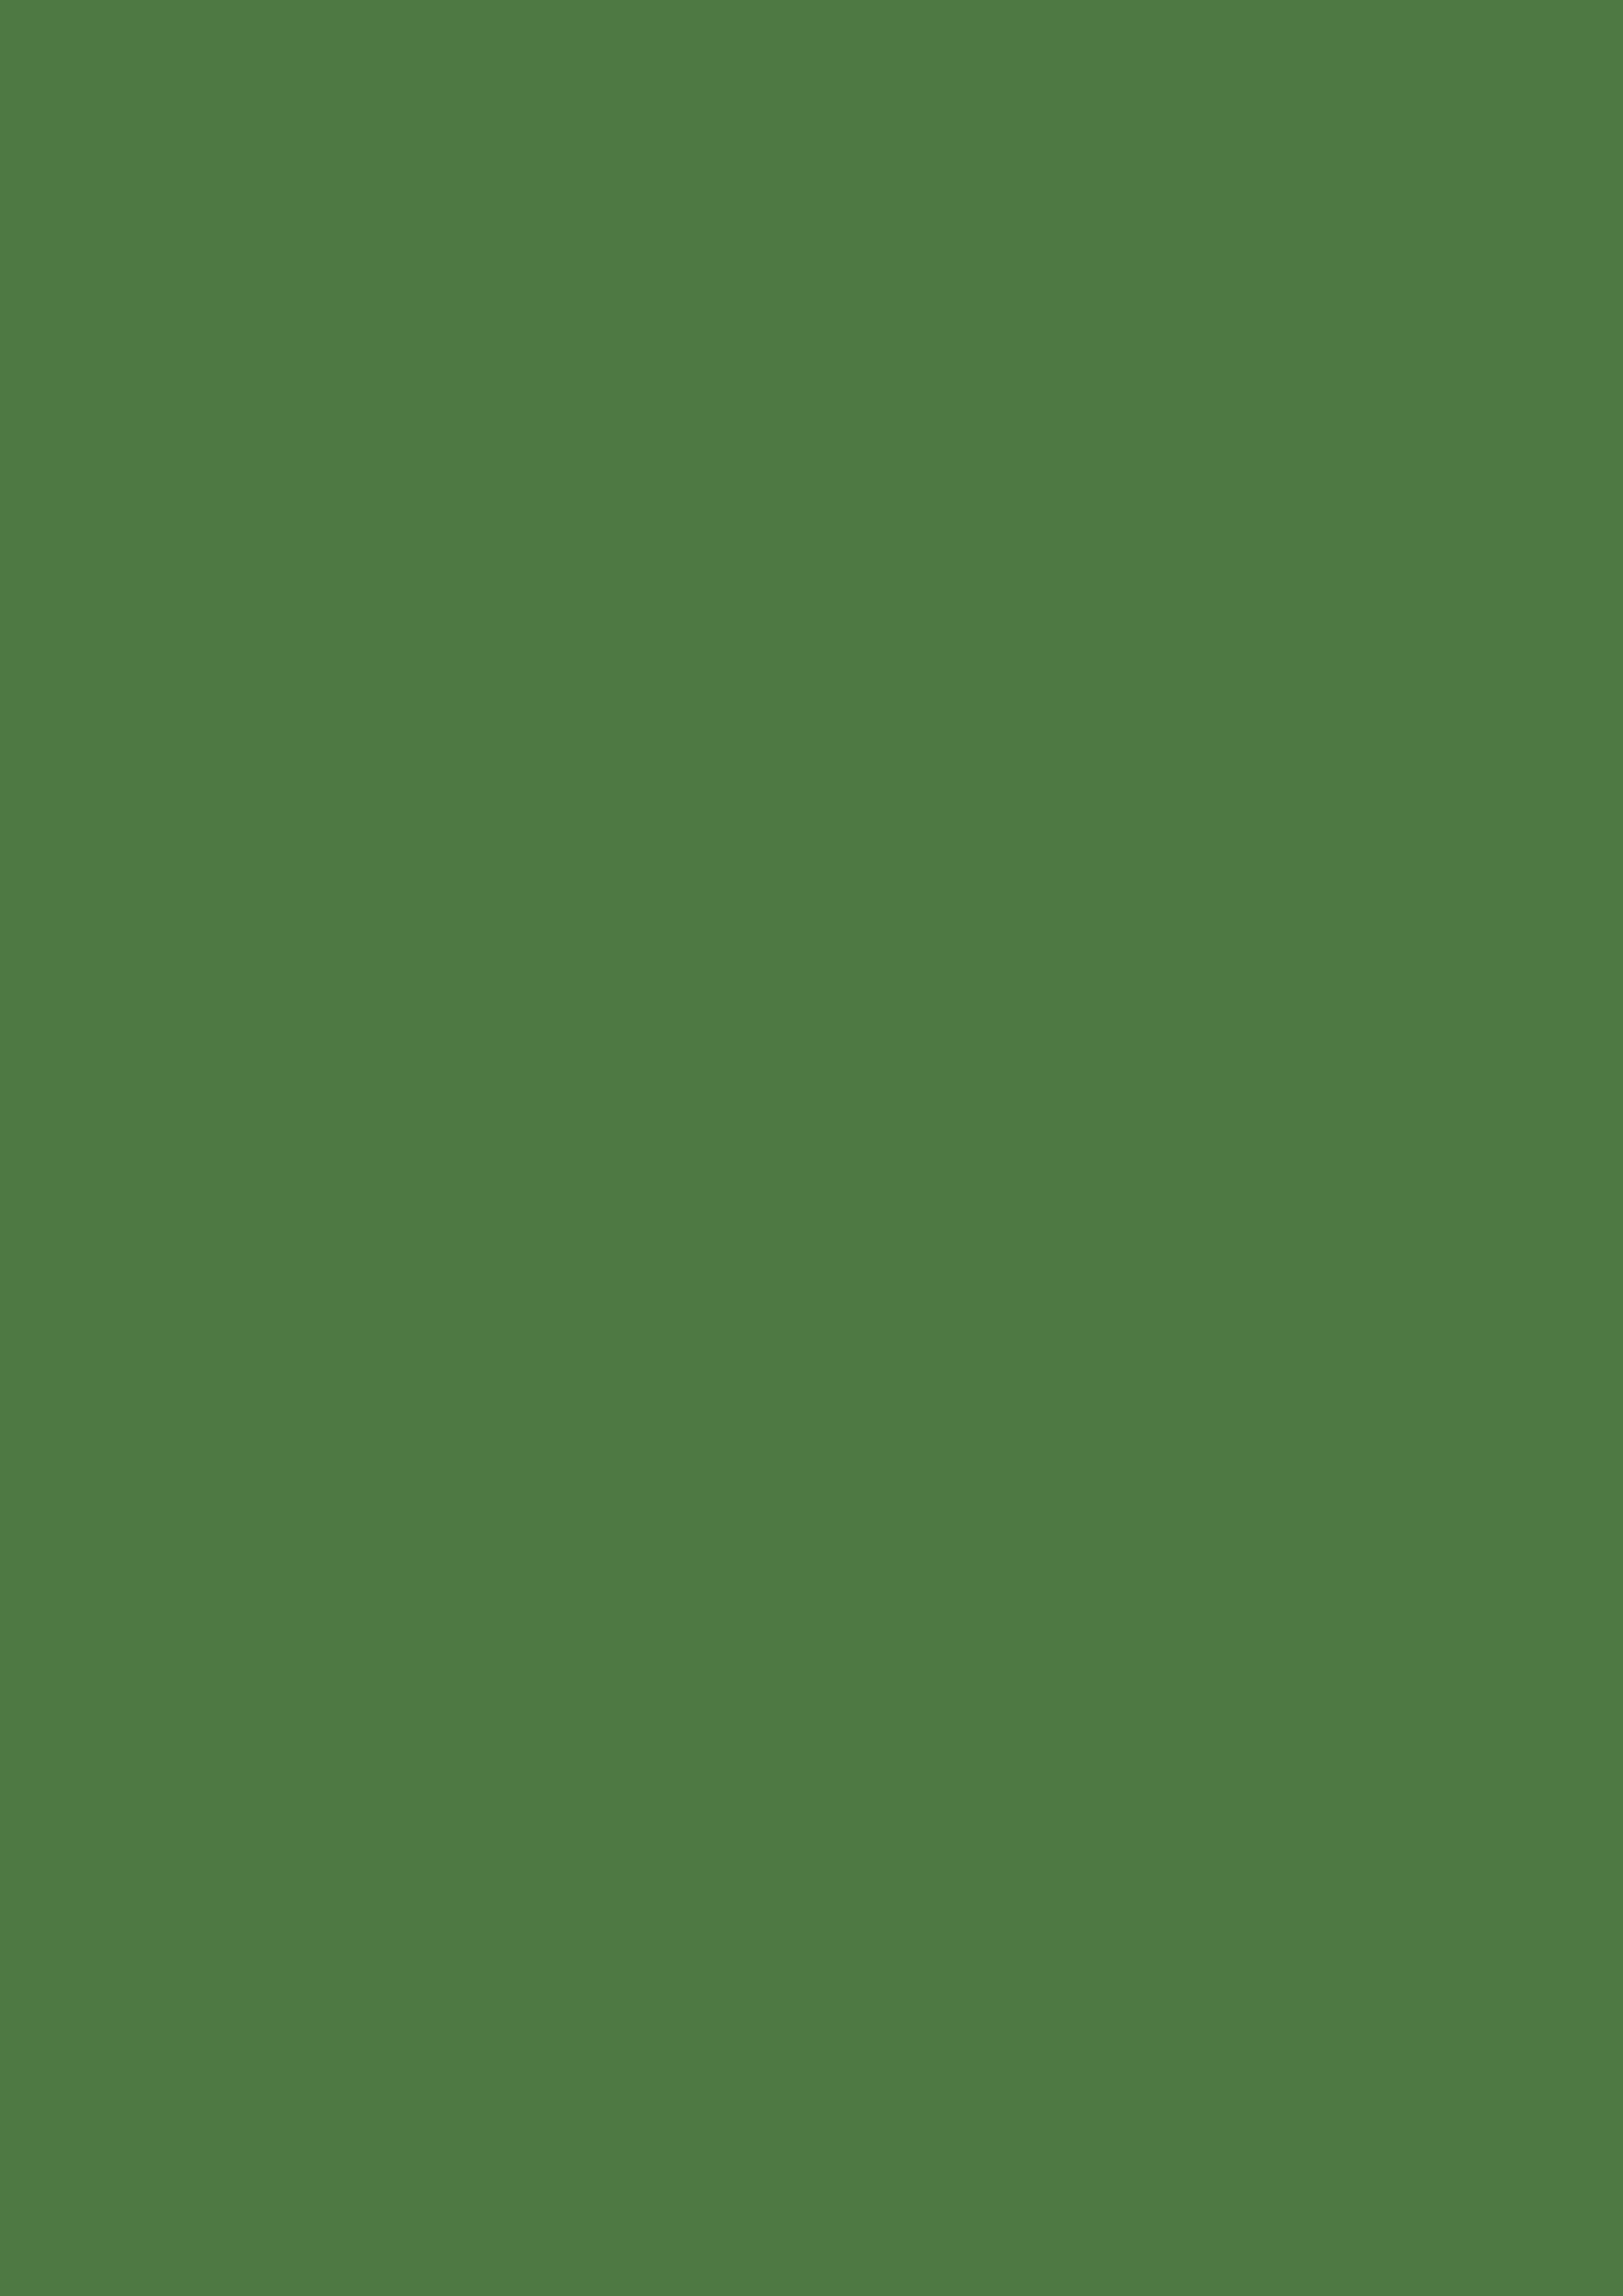 2480x3508 Fern Green Solid Color Background